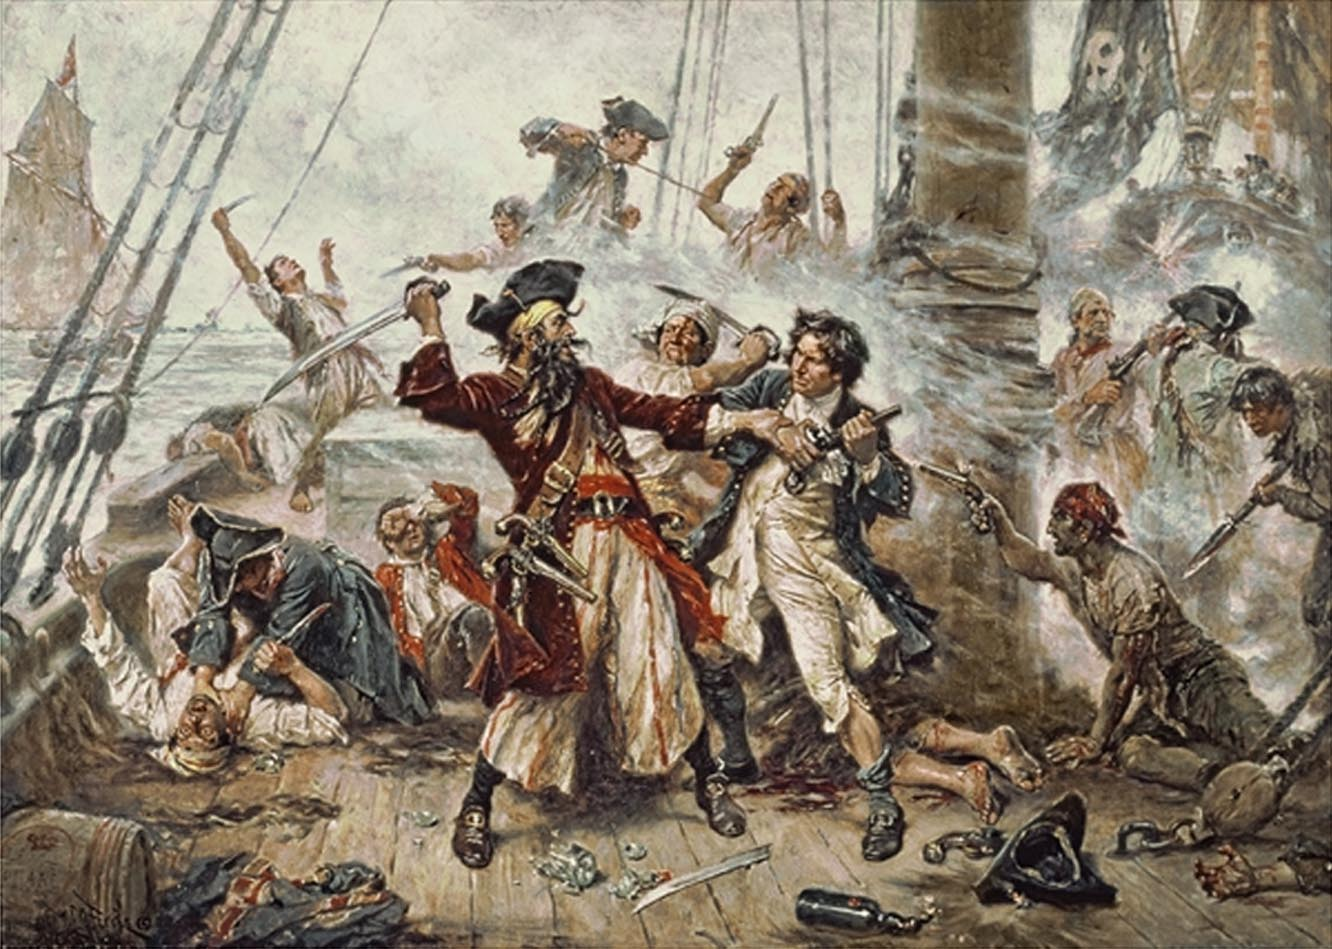 http://upload.wikimedia.org/wikipedia/commons/1/12/Capture-of-Blackbeard.jpg